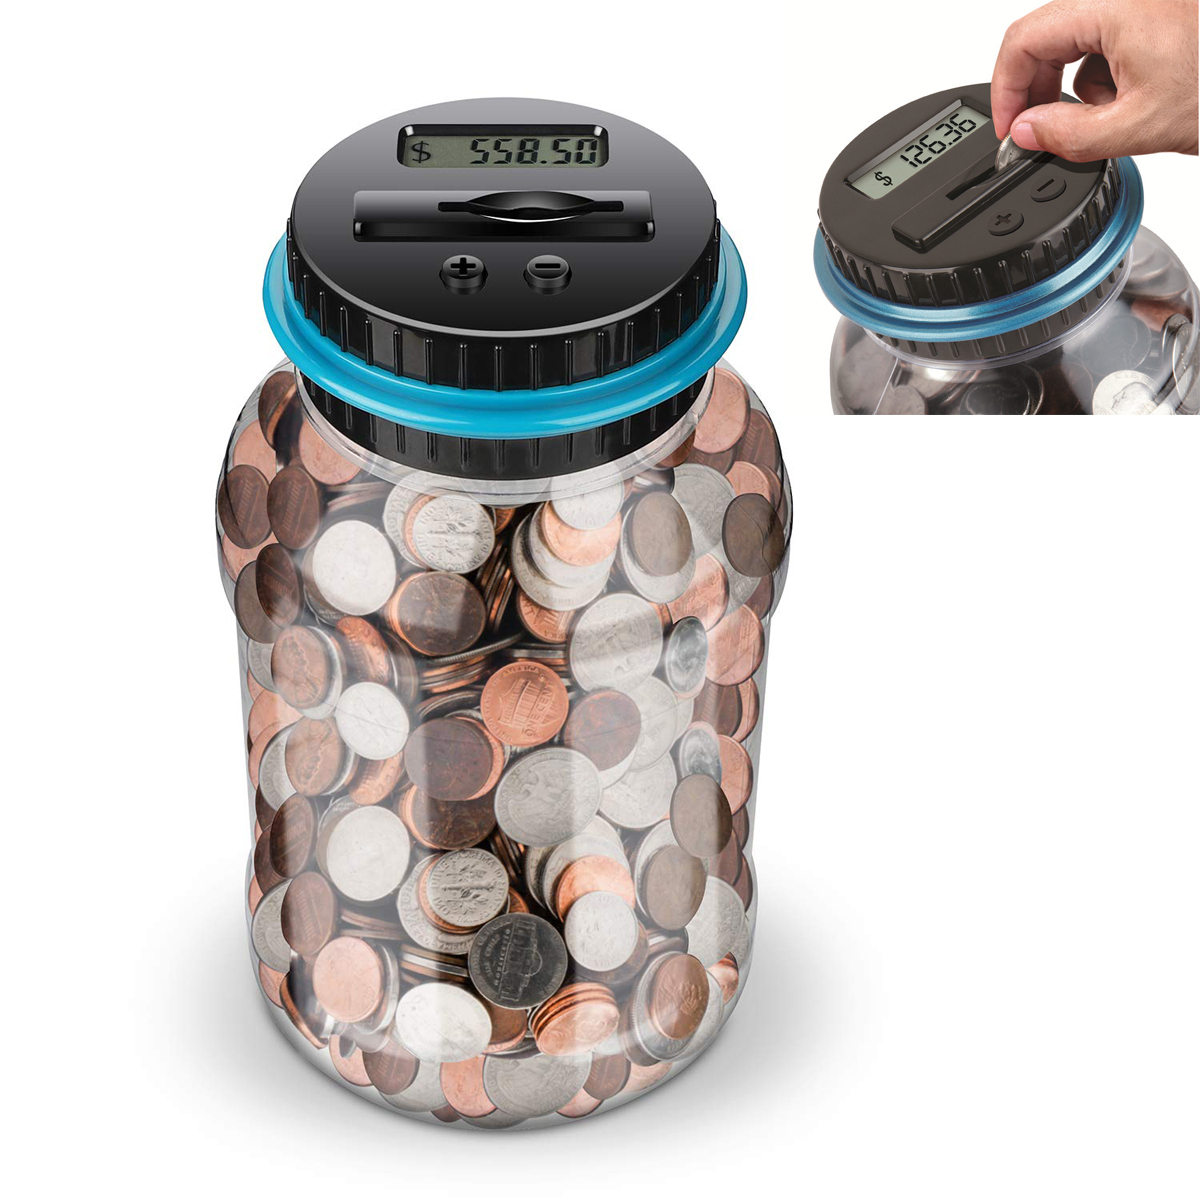 Digital Coin Savings Jar Automatic Coin Counter Piggy Bank With LCD Display